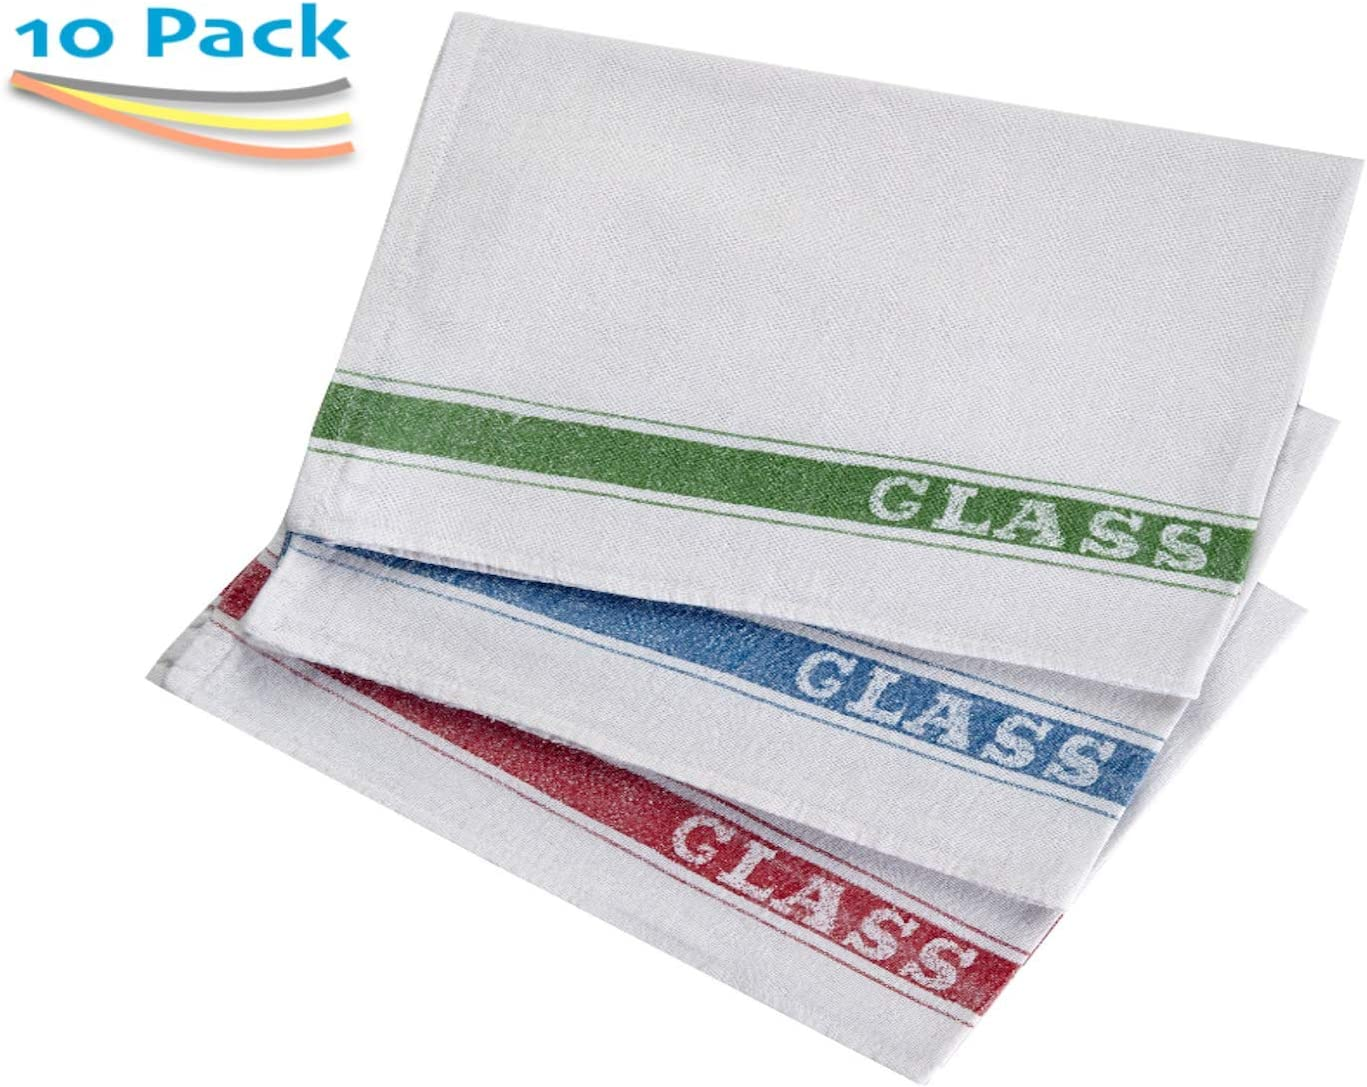 Cotton Rich Printed Glass ClothsAlternative To Tea TowelsPack of 10